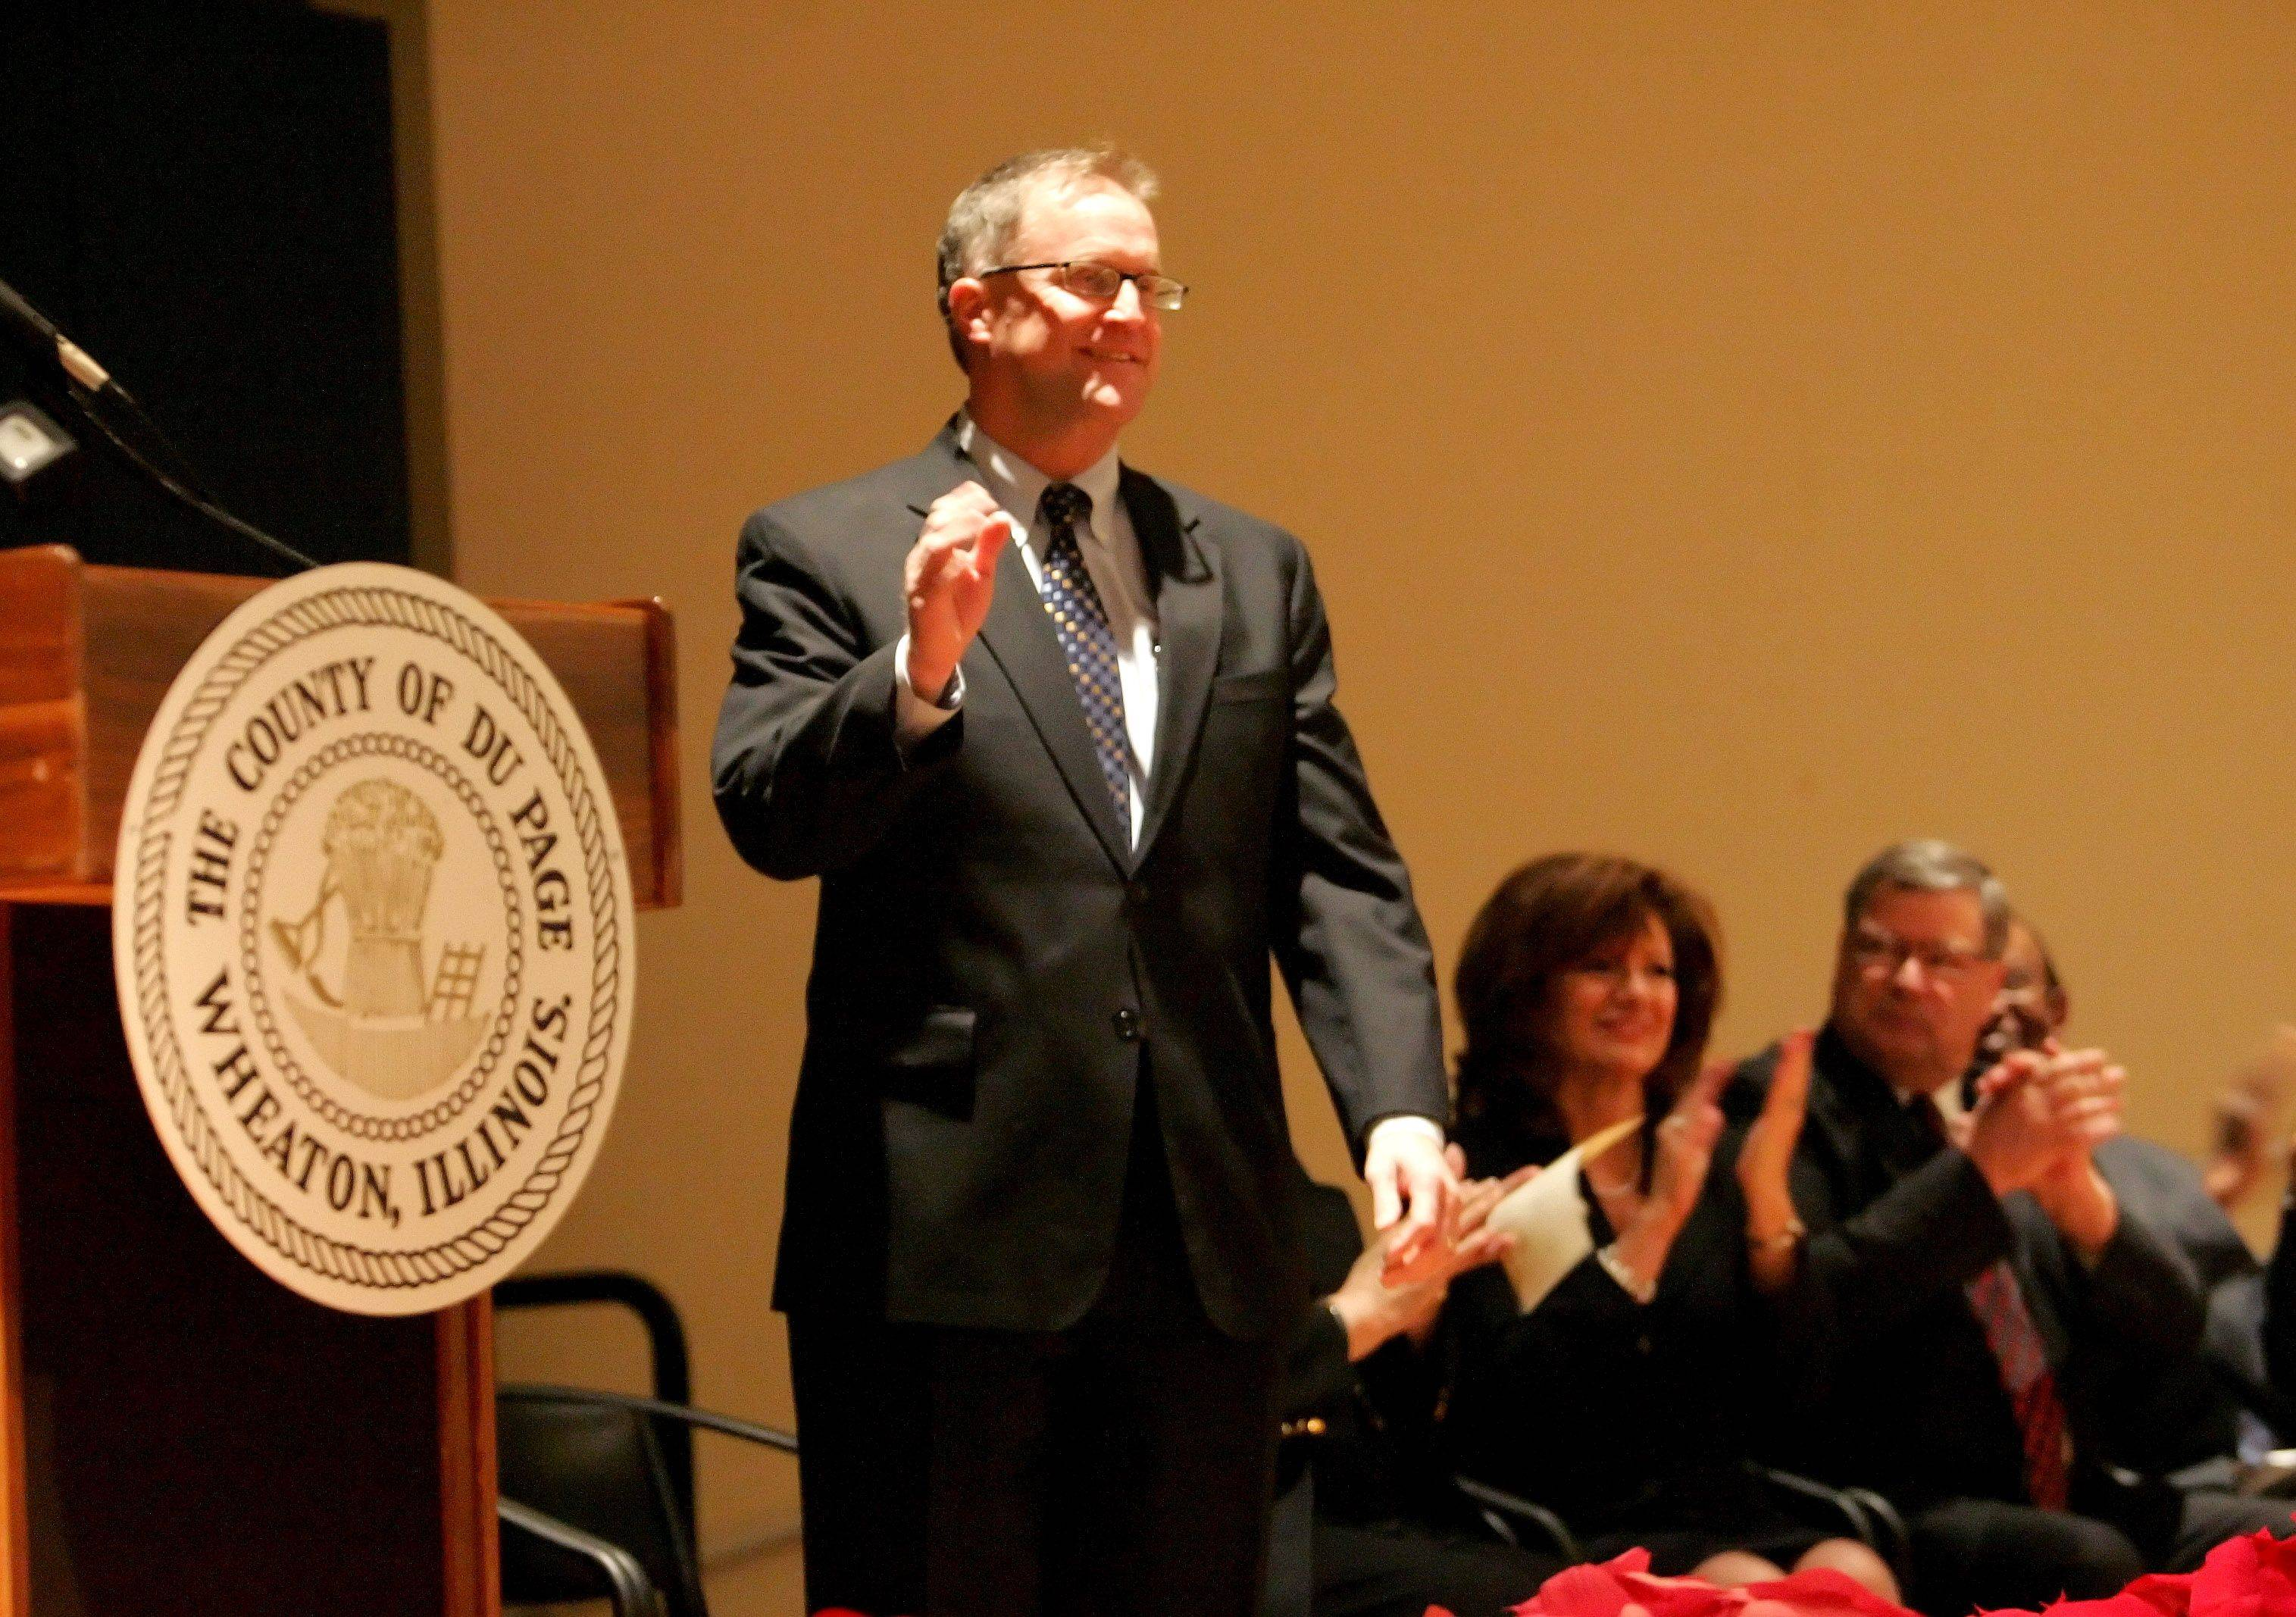 Dan Cronin acknowledges the applause after he is sworn in as the new DuPage County Board Chairman in Wheaton on Monday.